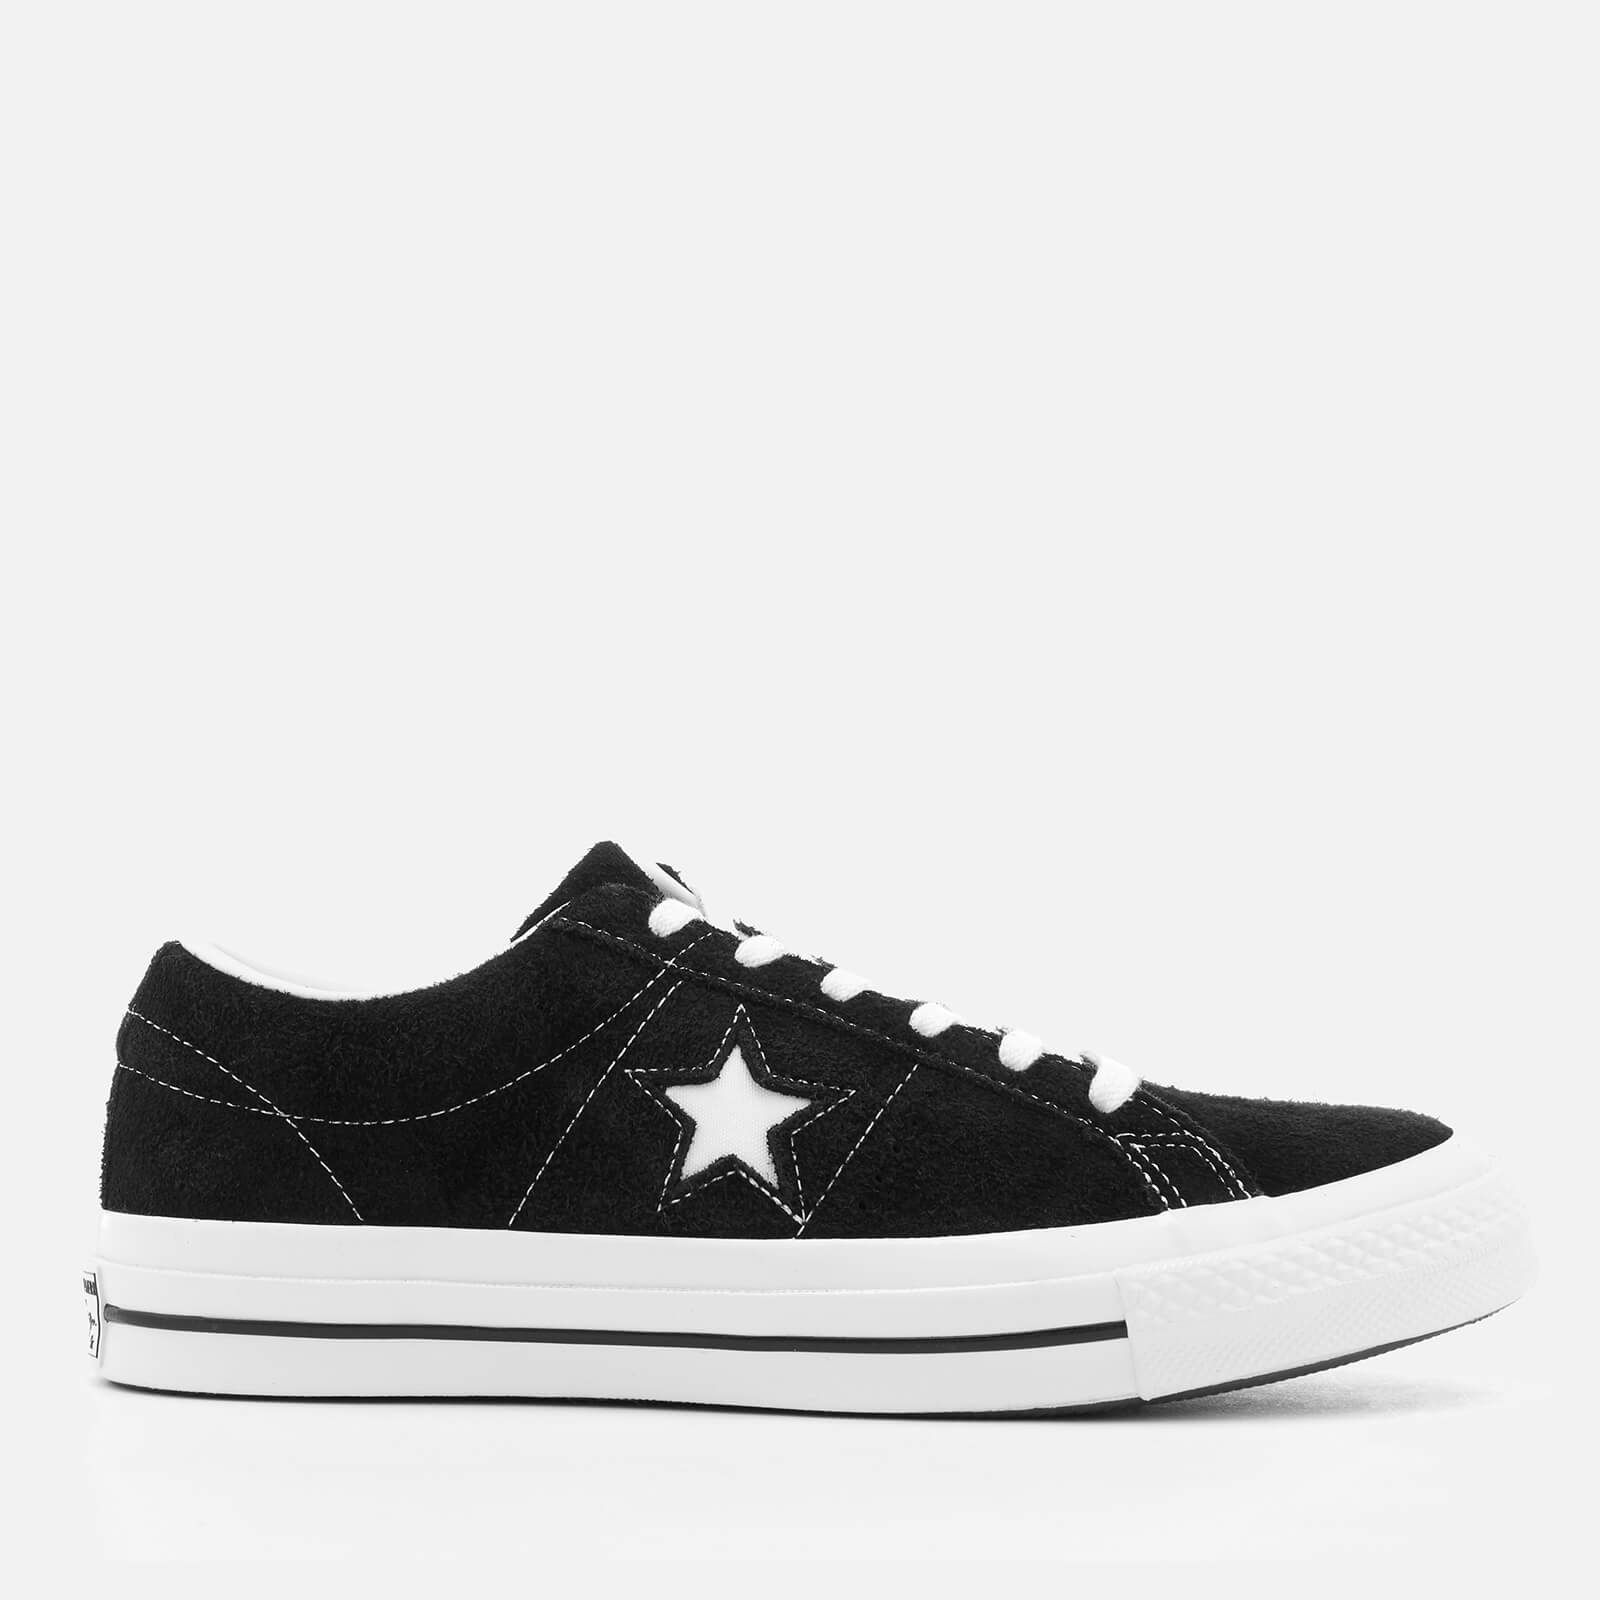 c2a1c25a537a Converse One Star Ox Trainers - Black White - Free UK Delivery over £50